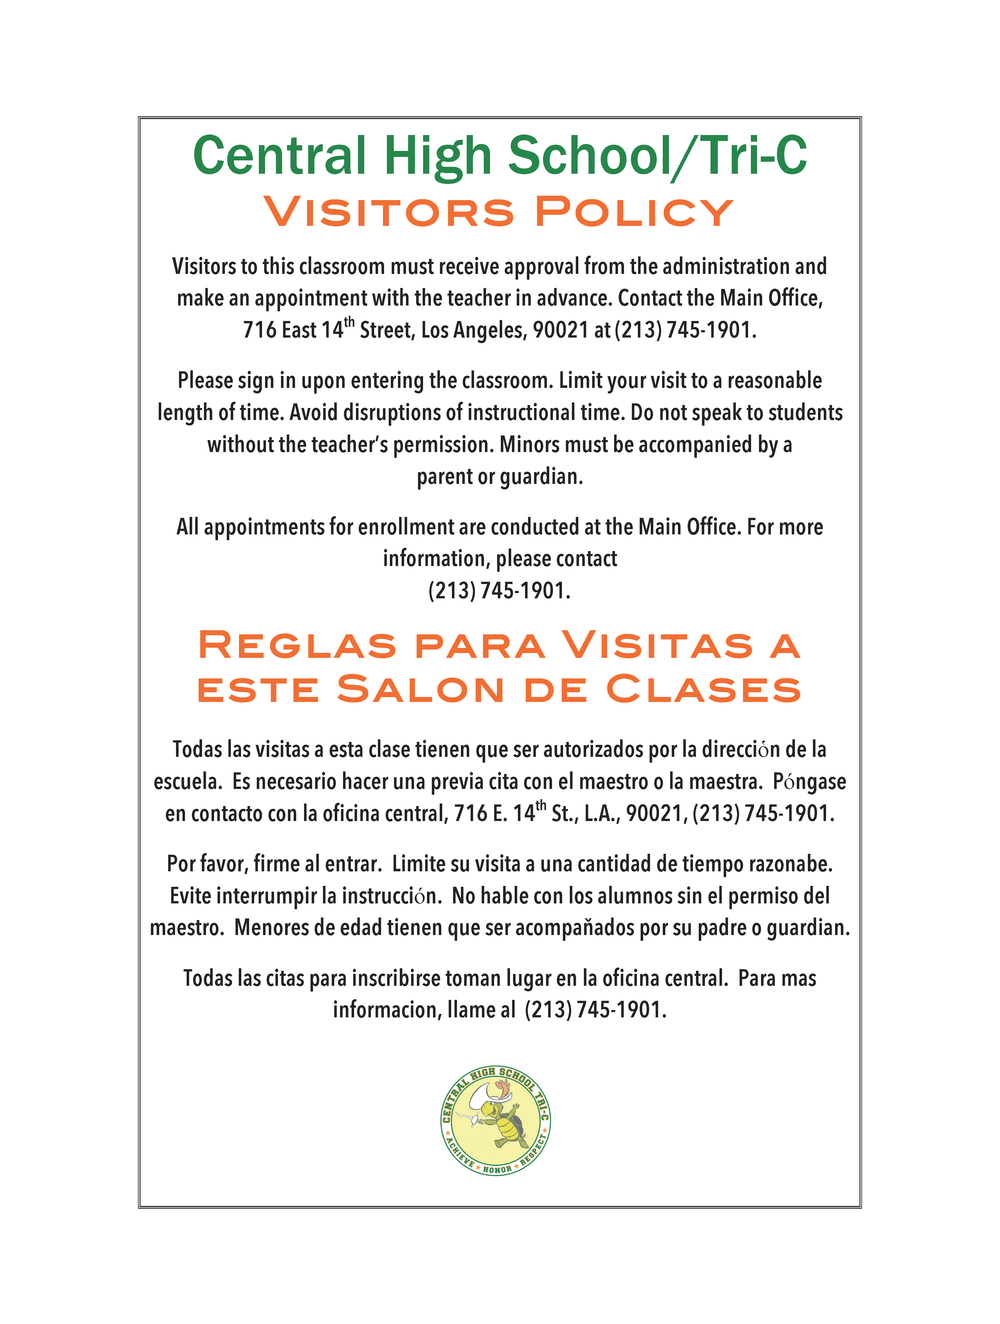 CHS Visitors' Policy PNG.png